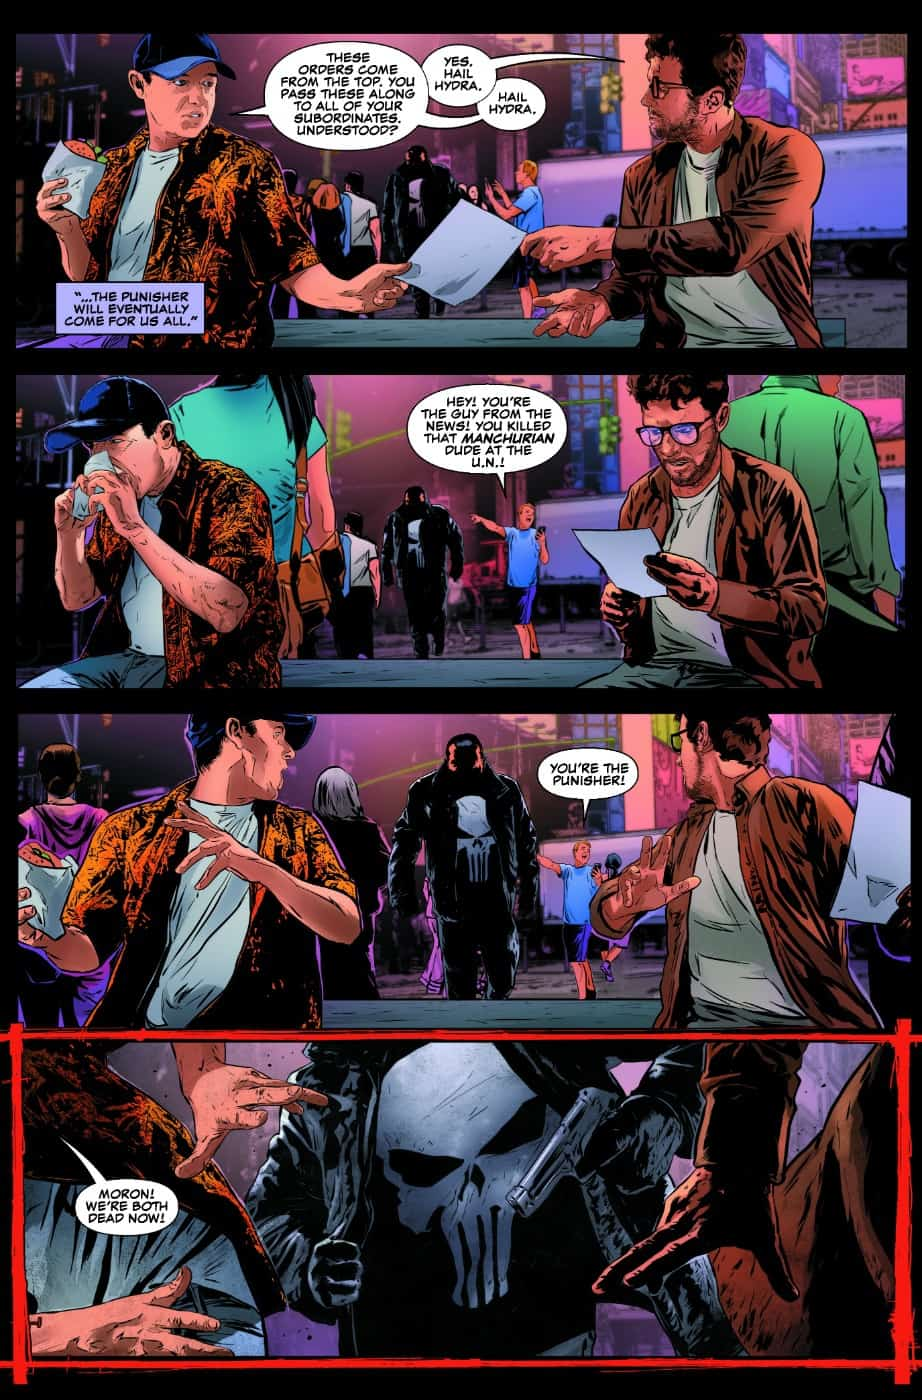 THE PUNISHER #2 page 5